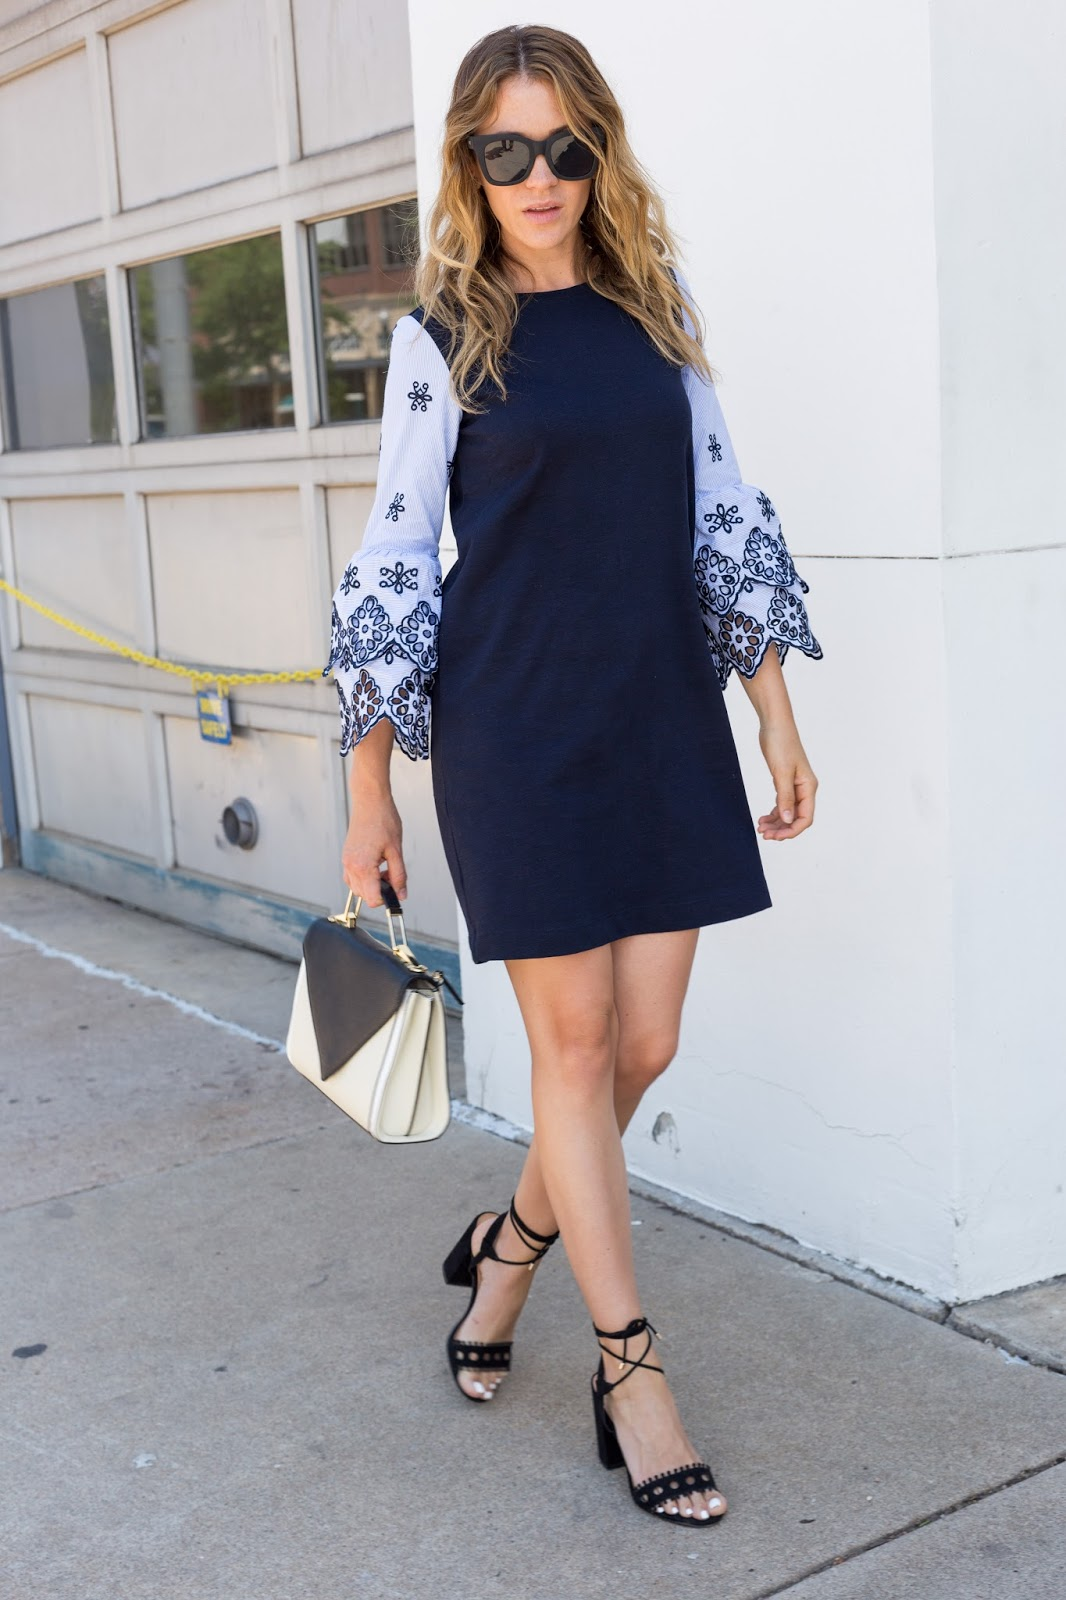 Loving this statement sleeve dress with these lace up heels!